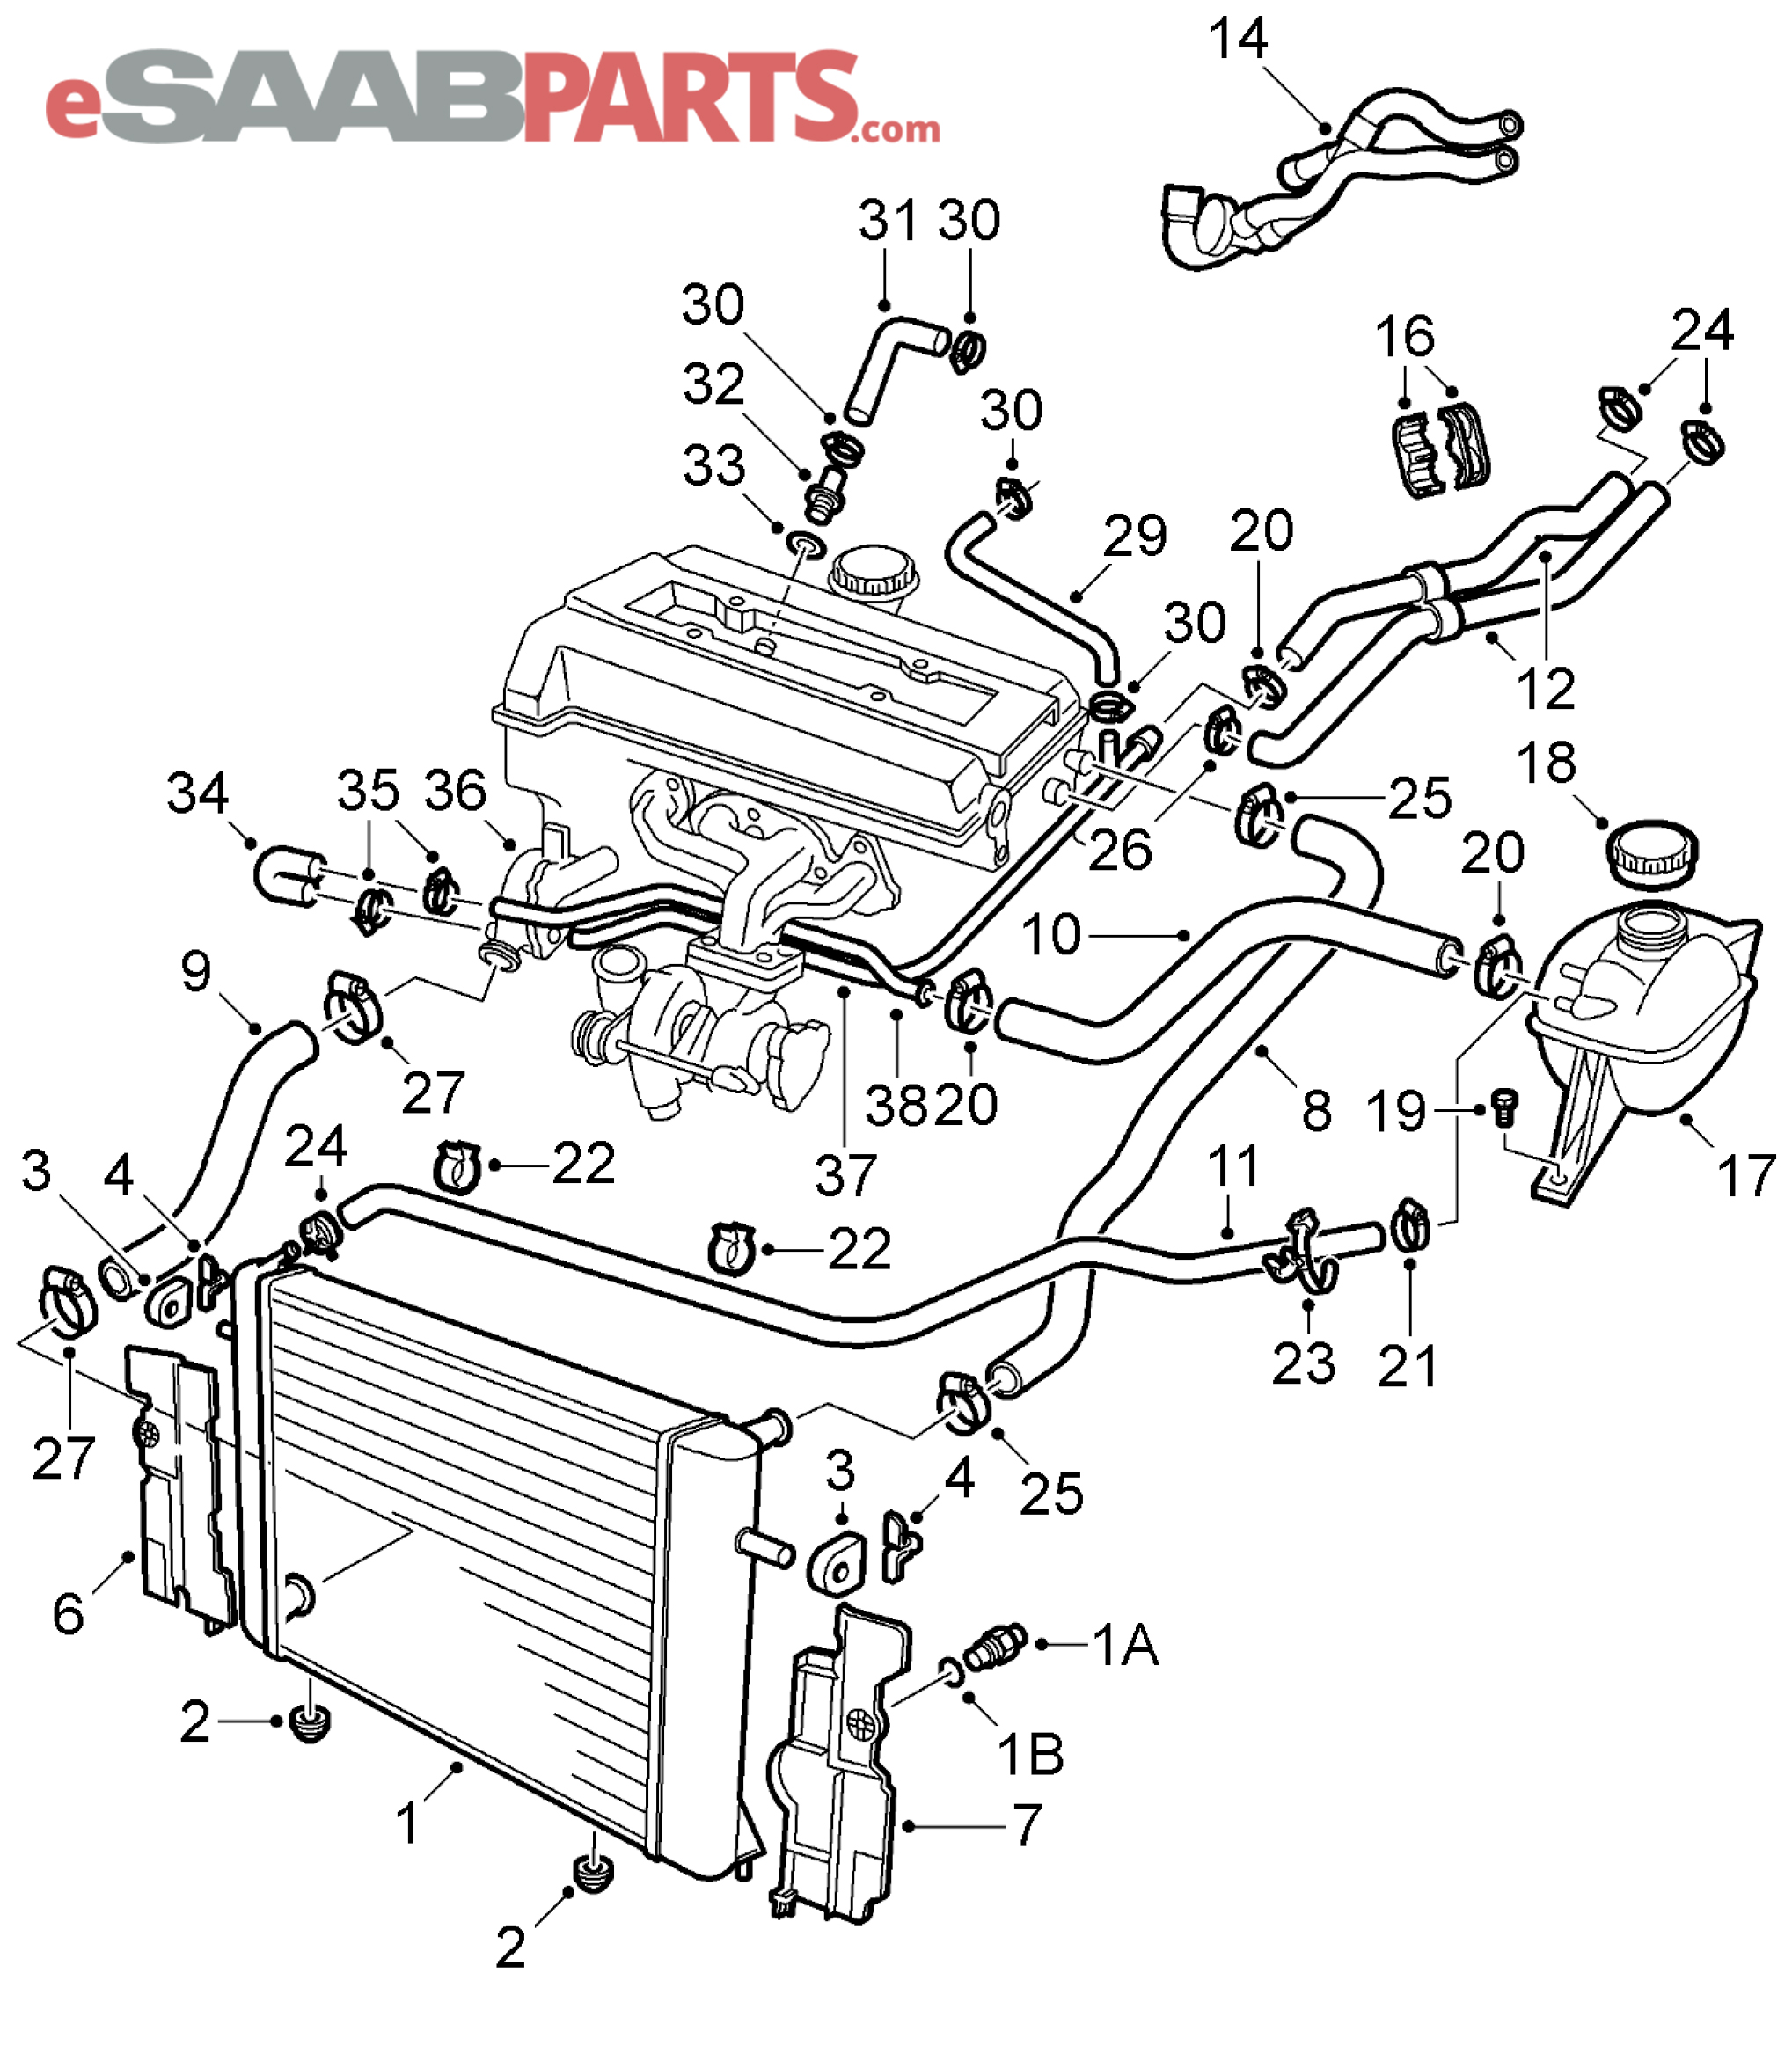 Saab 9 5 Cooling Parts Diagram on 2004 saab 9 3 turbo